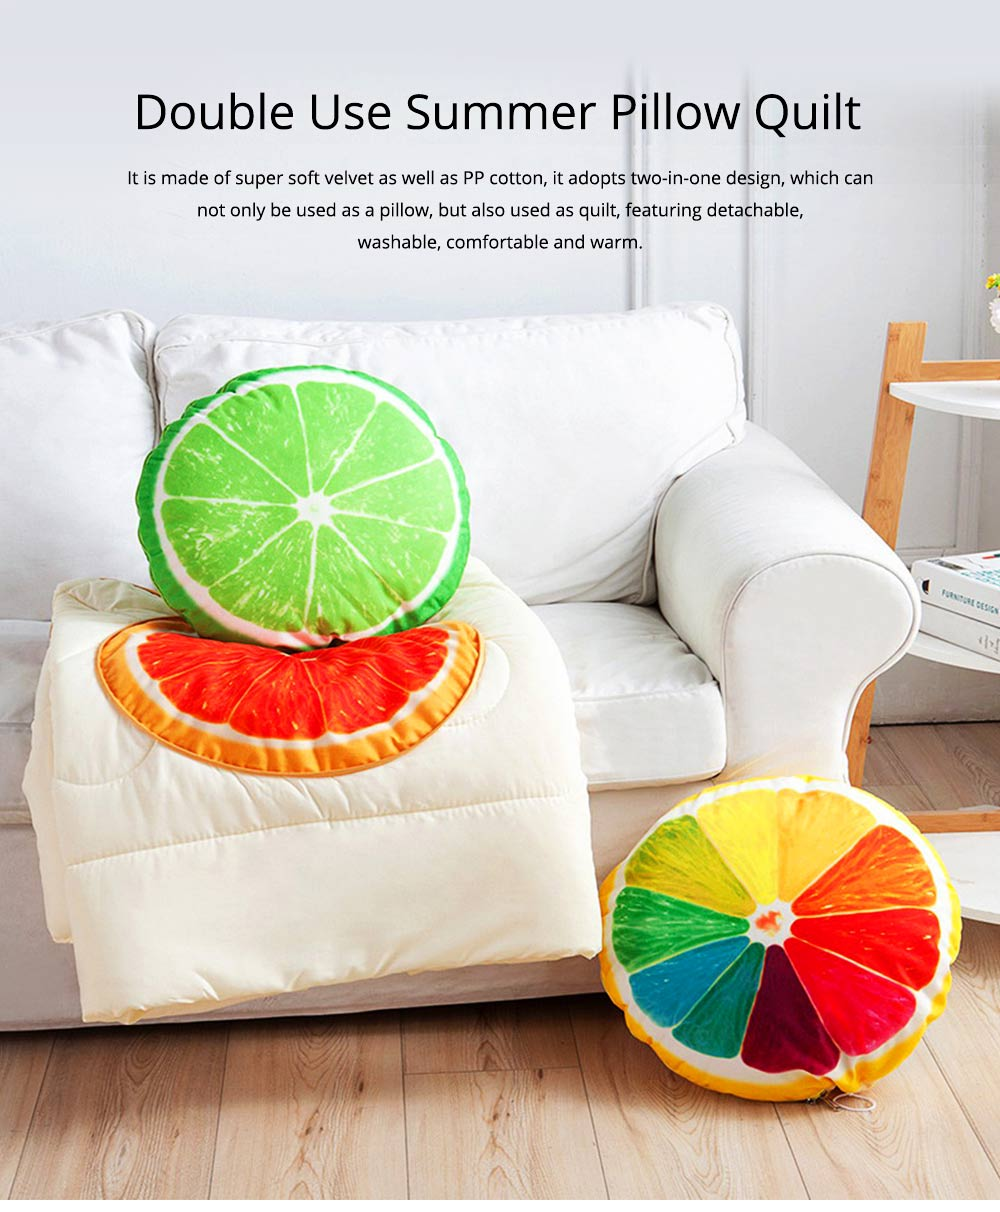 Double Use Summer Pillow Quilt Foldable Stylish Car Pillow Quilt for Office Noon Nap 0